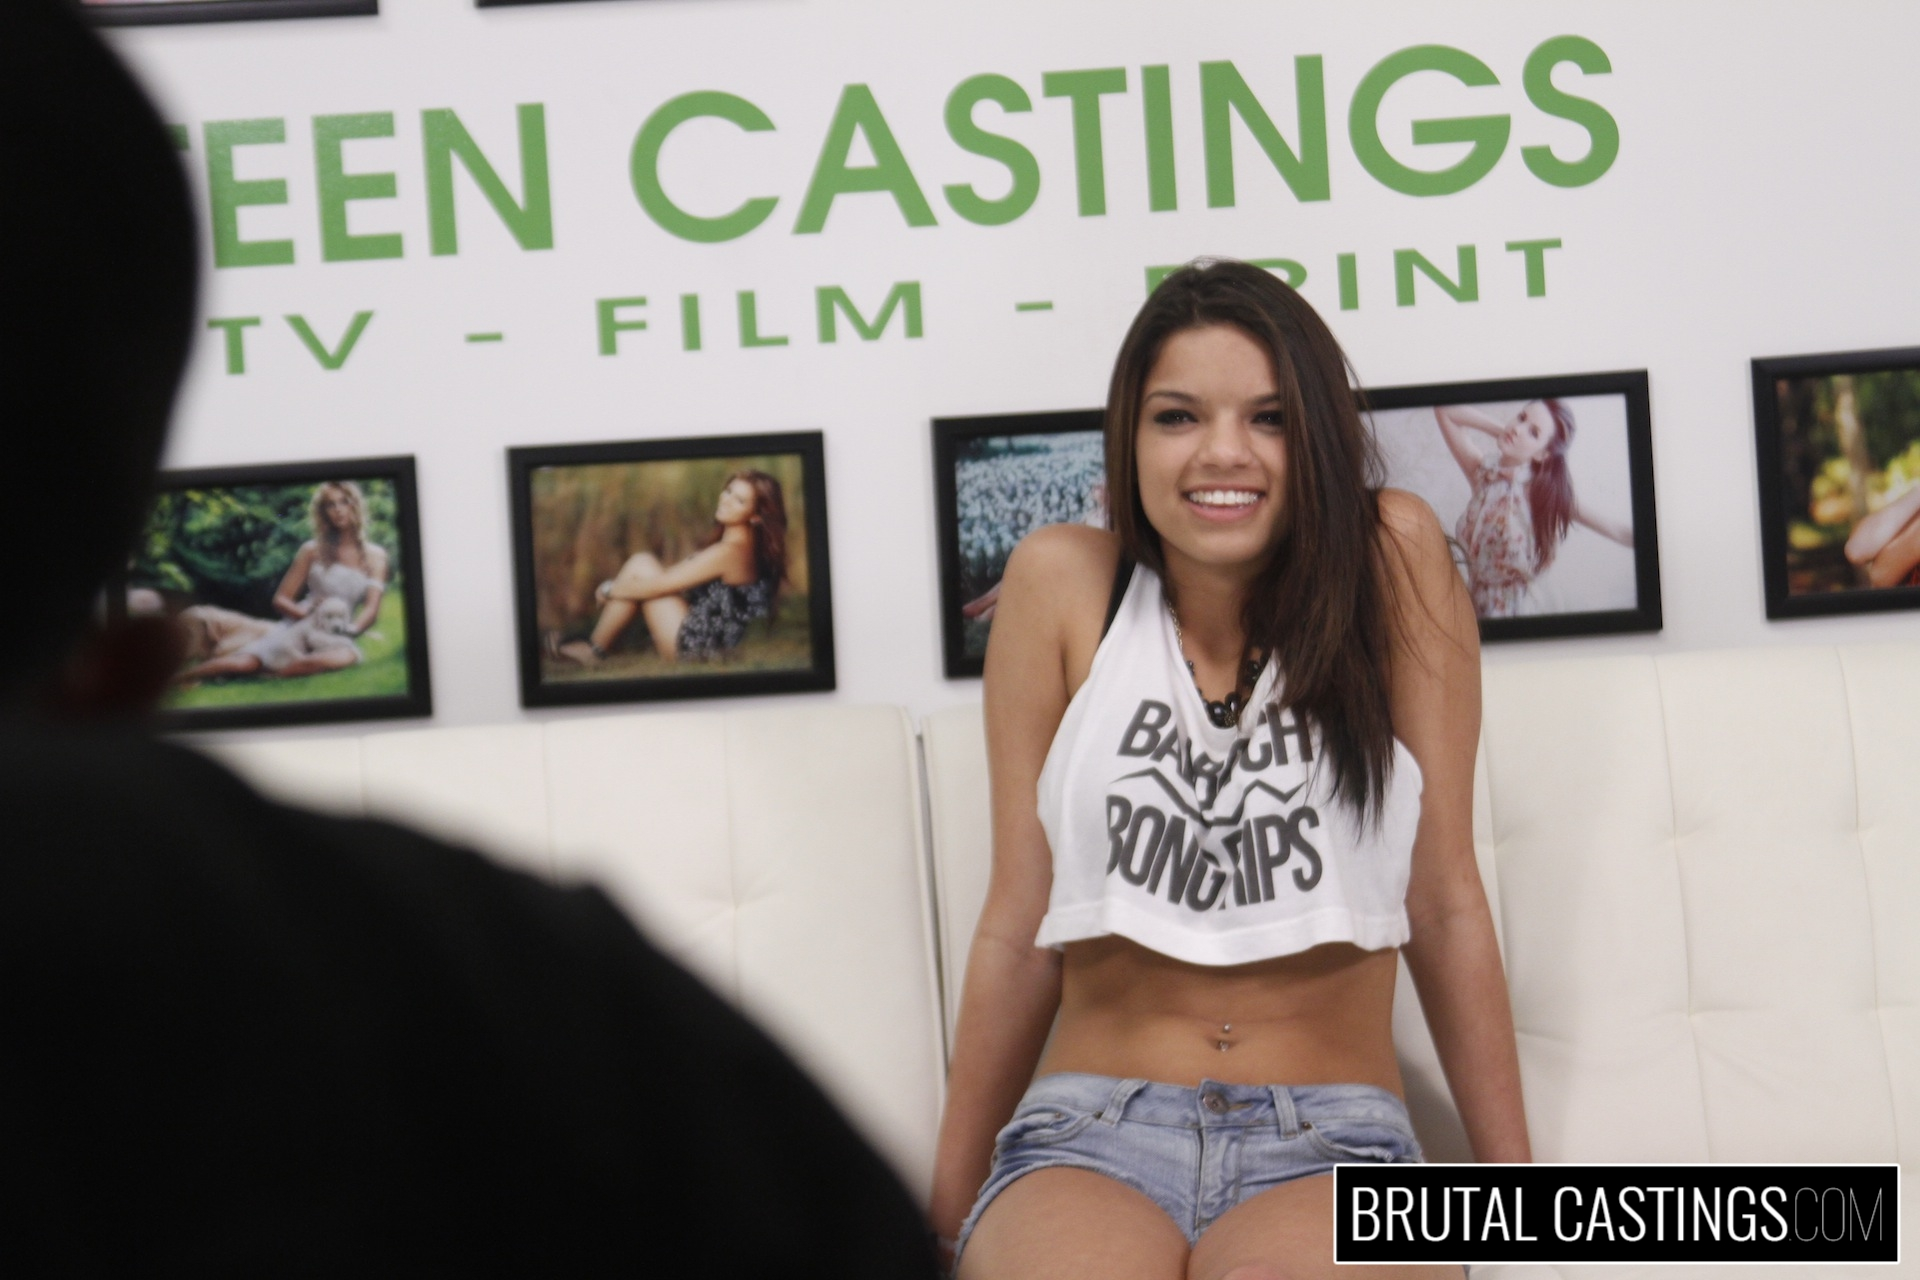 Bdsm casting  with carrie brooks. Carrie Brooks, a hot young smiley face with caramel skin, wants to become a model and all the fun perks with Teen Castings! She'll do anything to get what she wants. She'll even endure BDSM, domination, rope bondage, deepthroat bj, fingering, squirting, spanking, slapping and deep penetration violent sex.